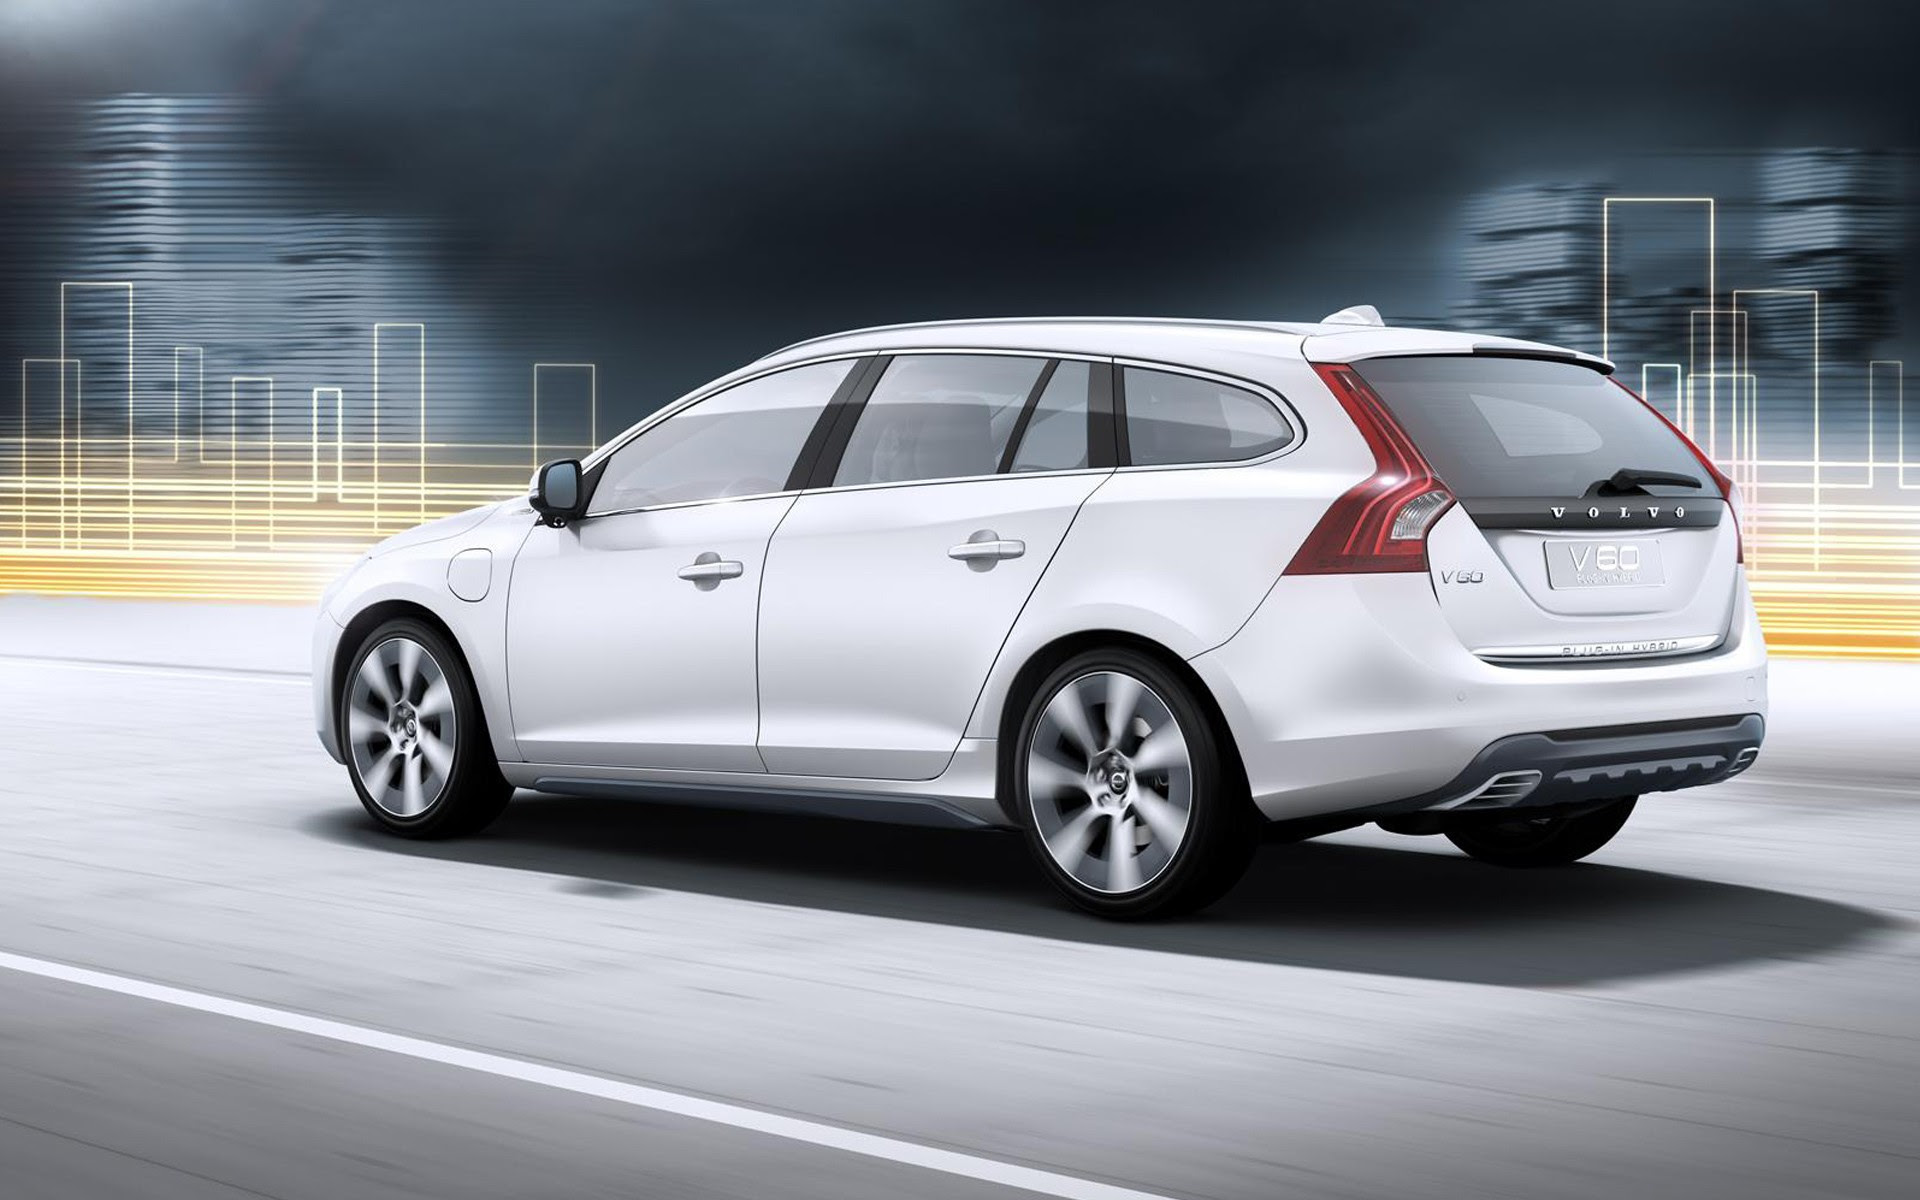 2012 Volvo v60 Hybrid 2 Wallpaper  HD Car Wallpapers  ID 2298